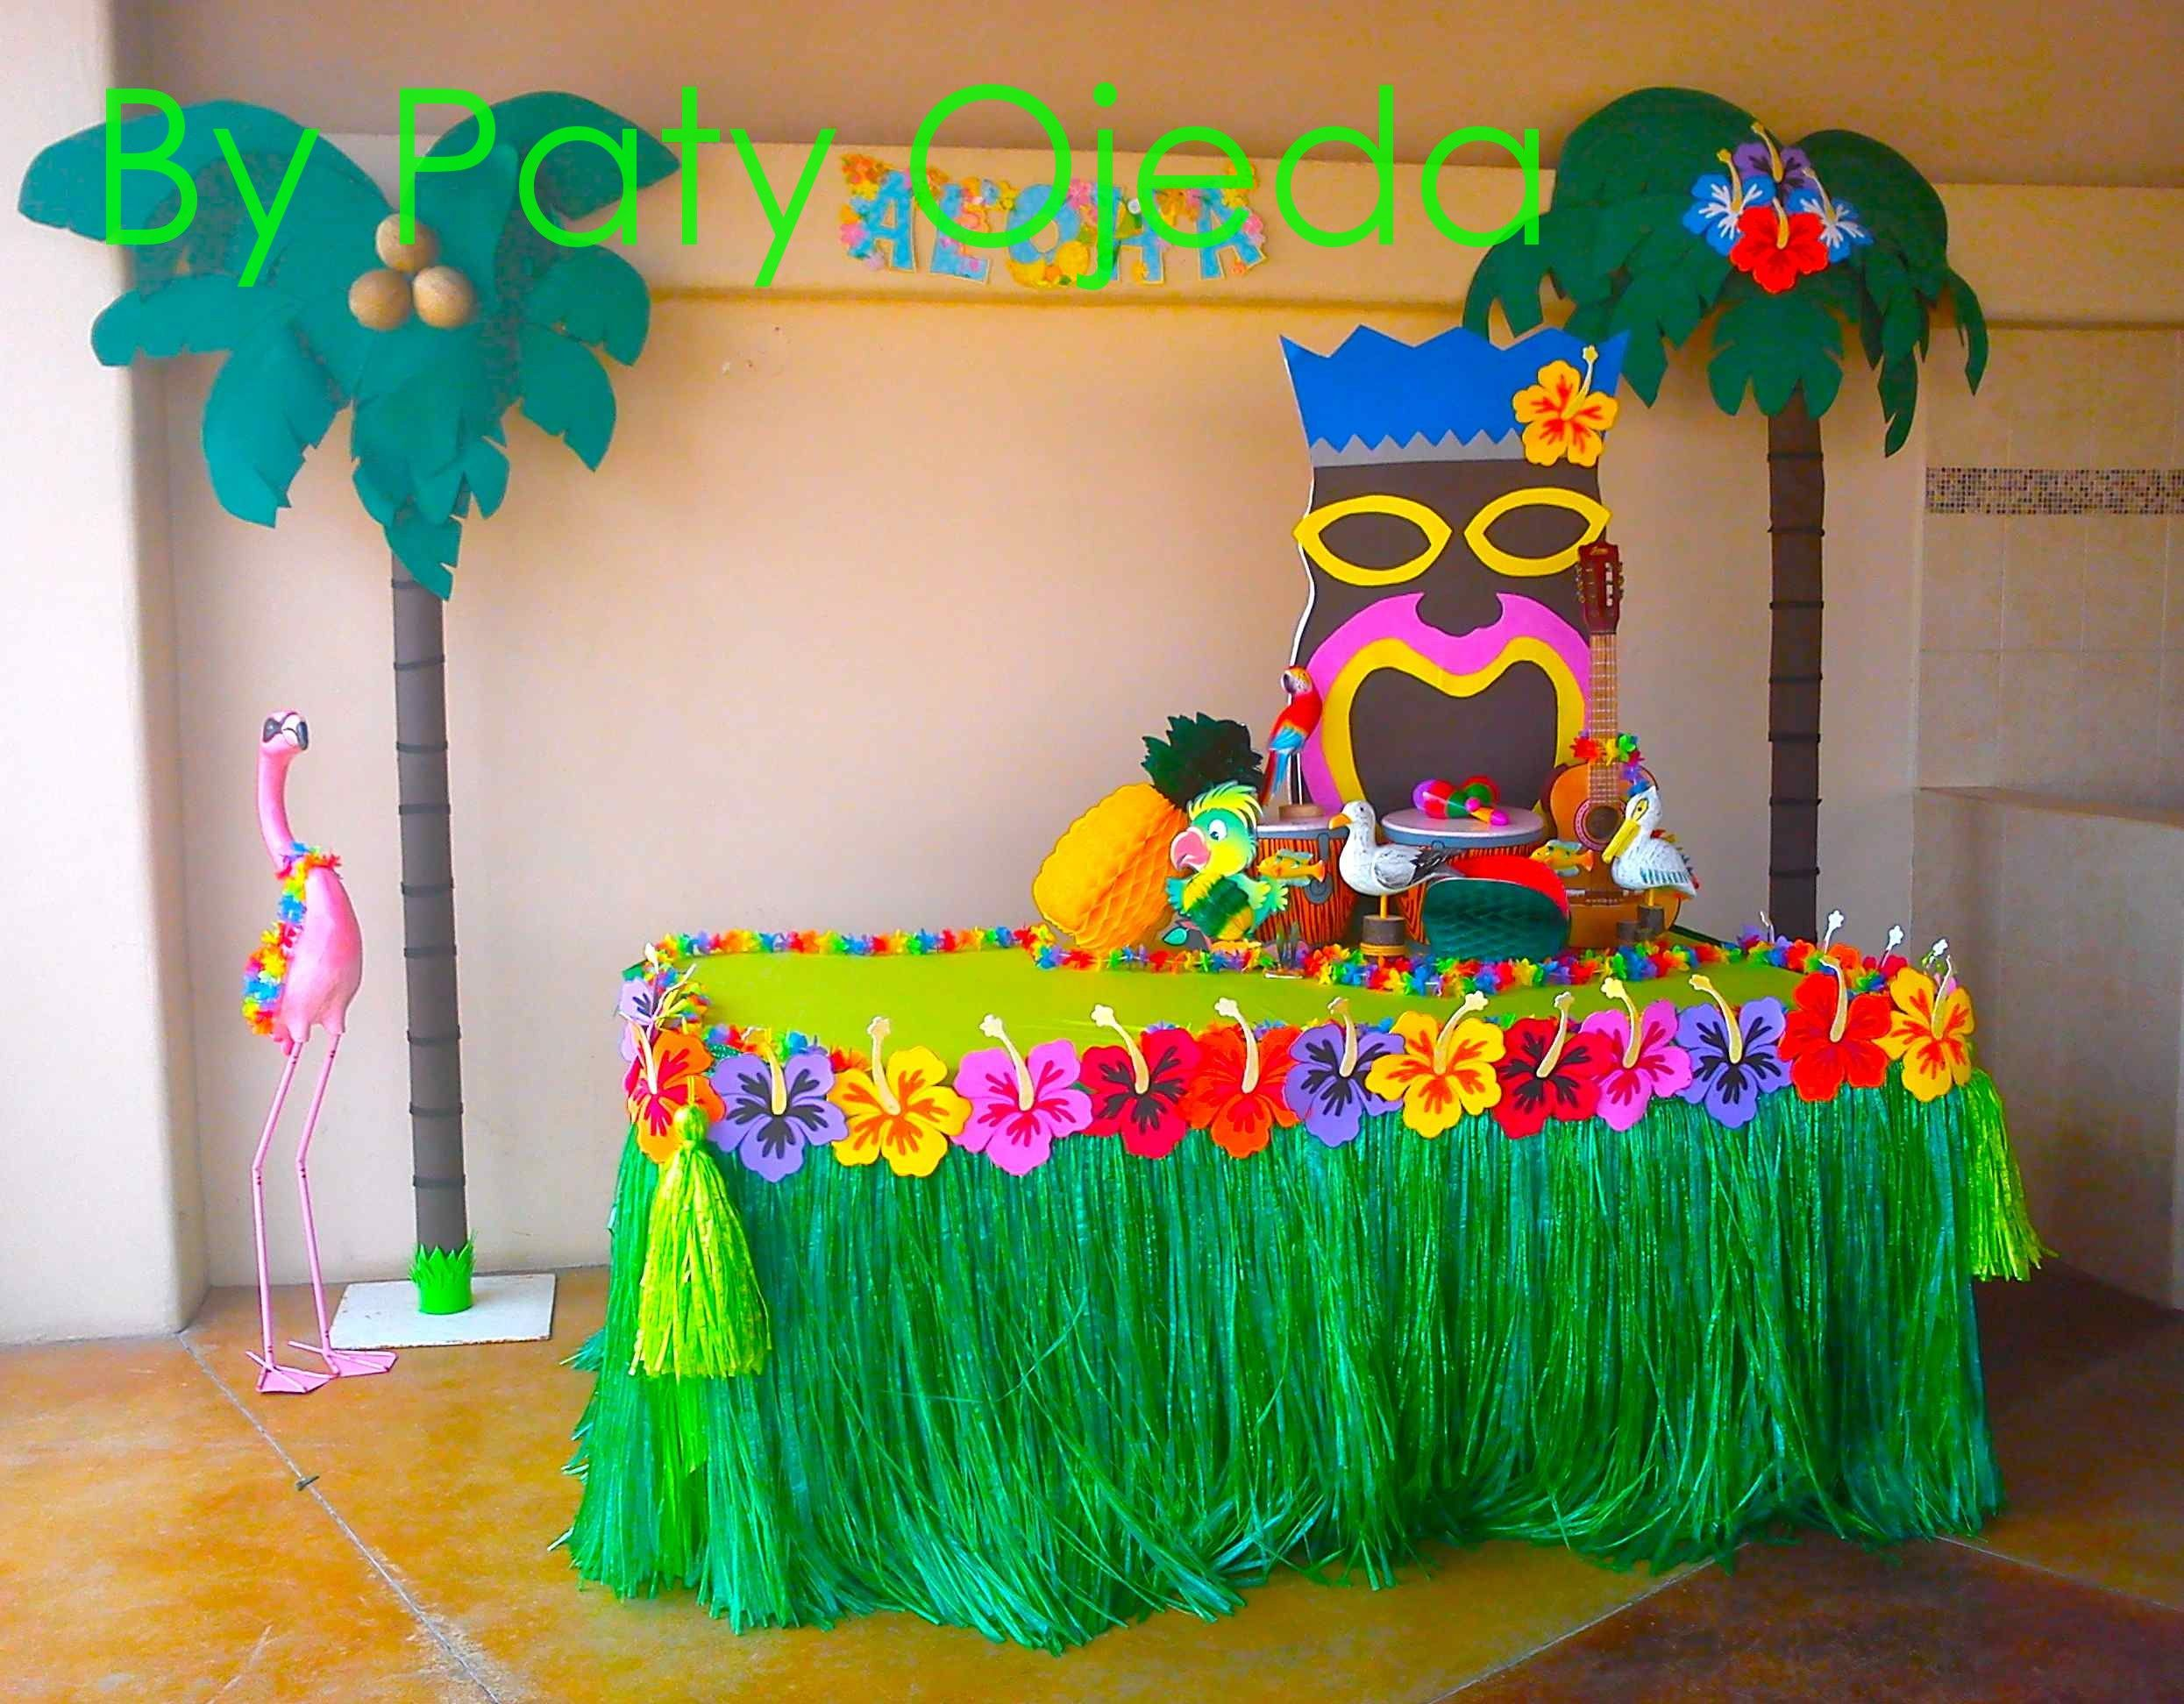 Fiesta hawaiana decoracion globos buscar con google for Decoraciones para fiestas de 15